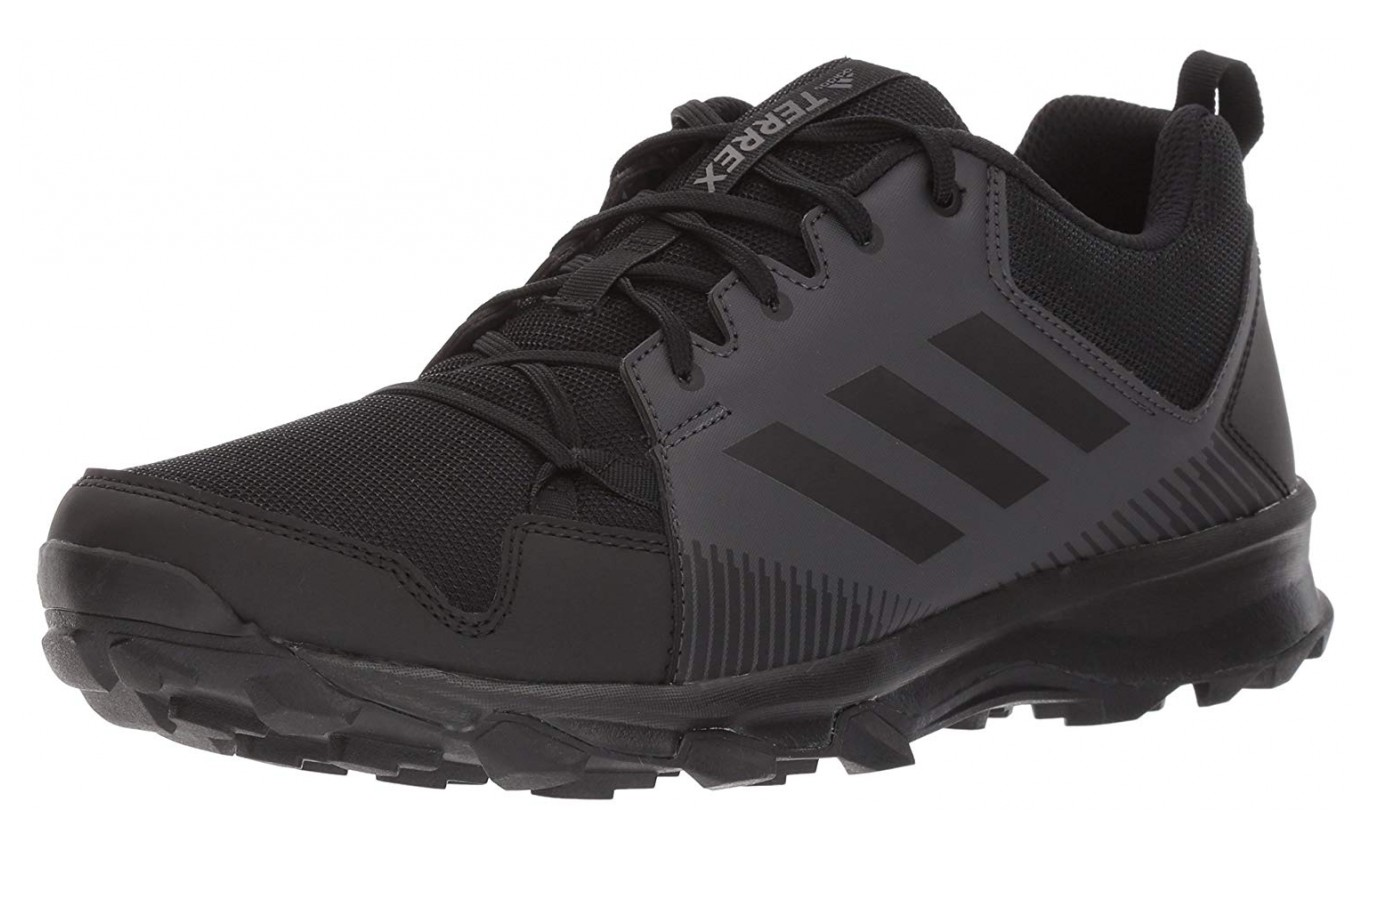 Although a trail running shoe, the Tracerocker has everyday style.